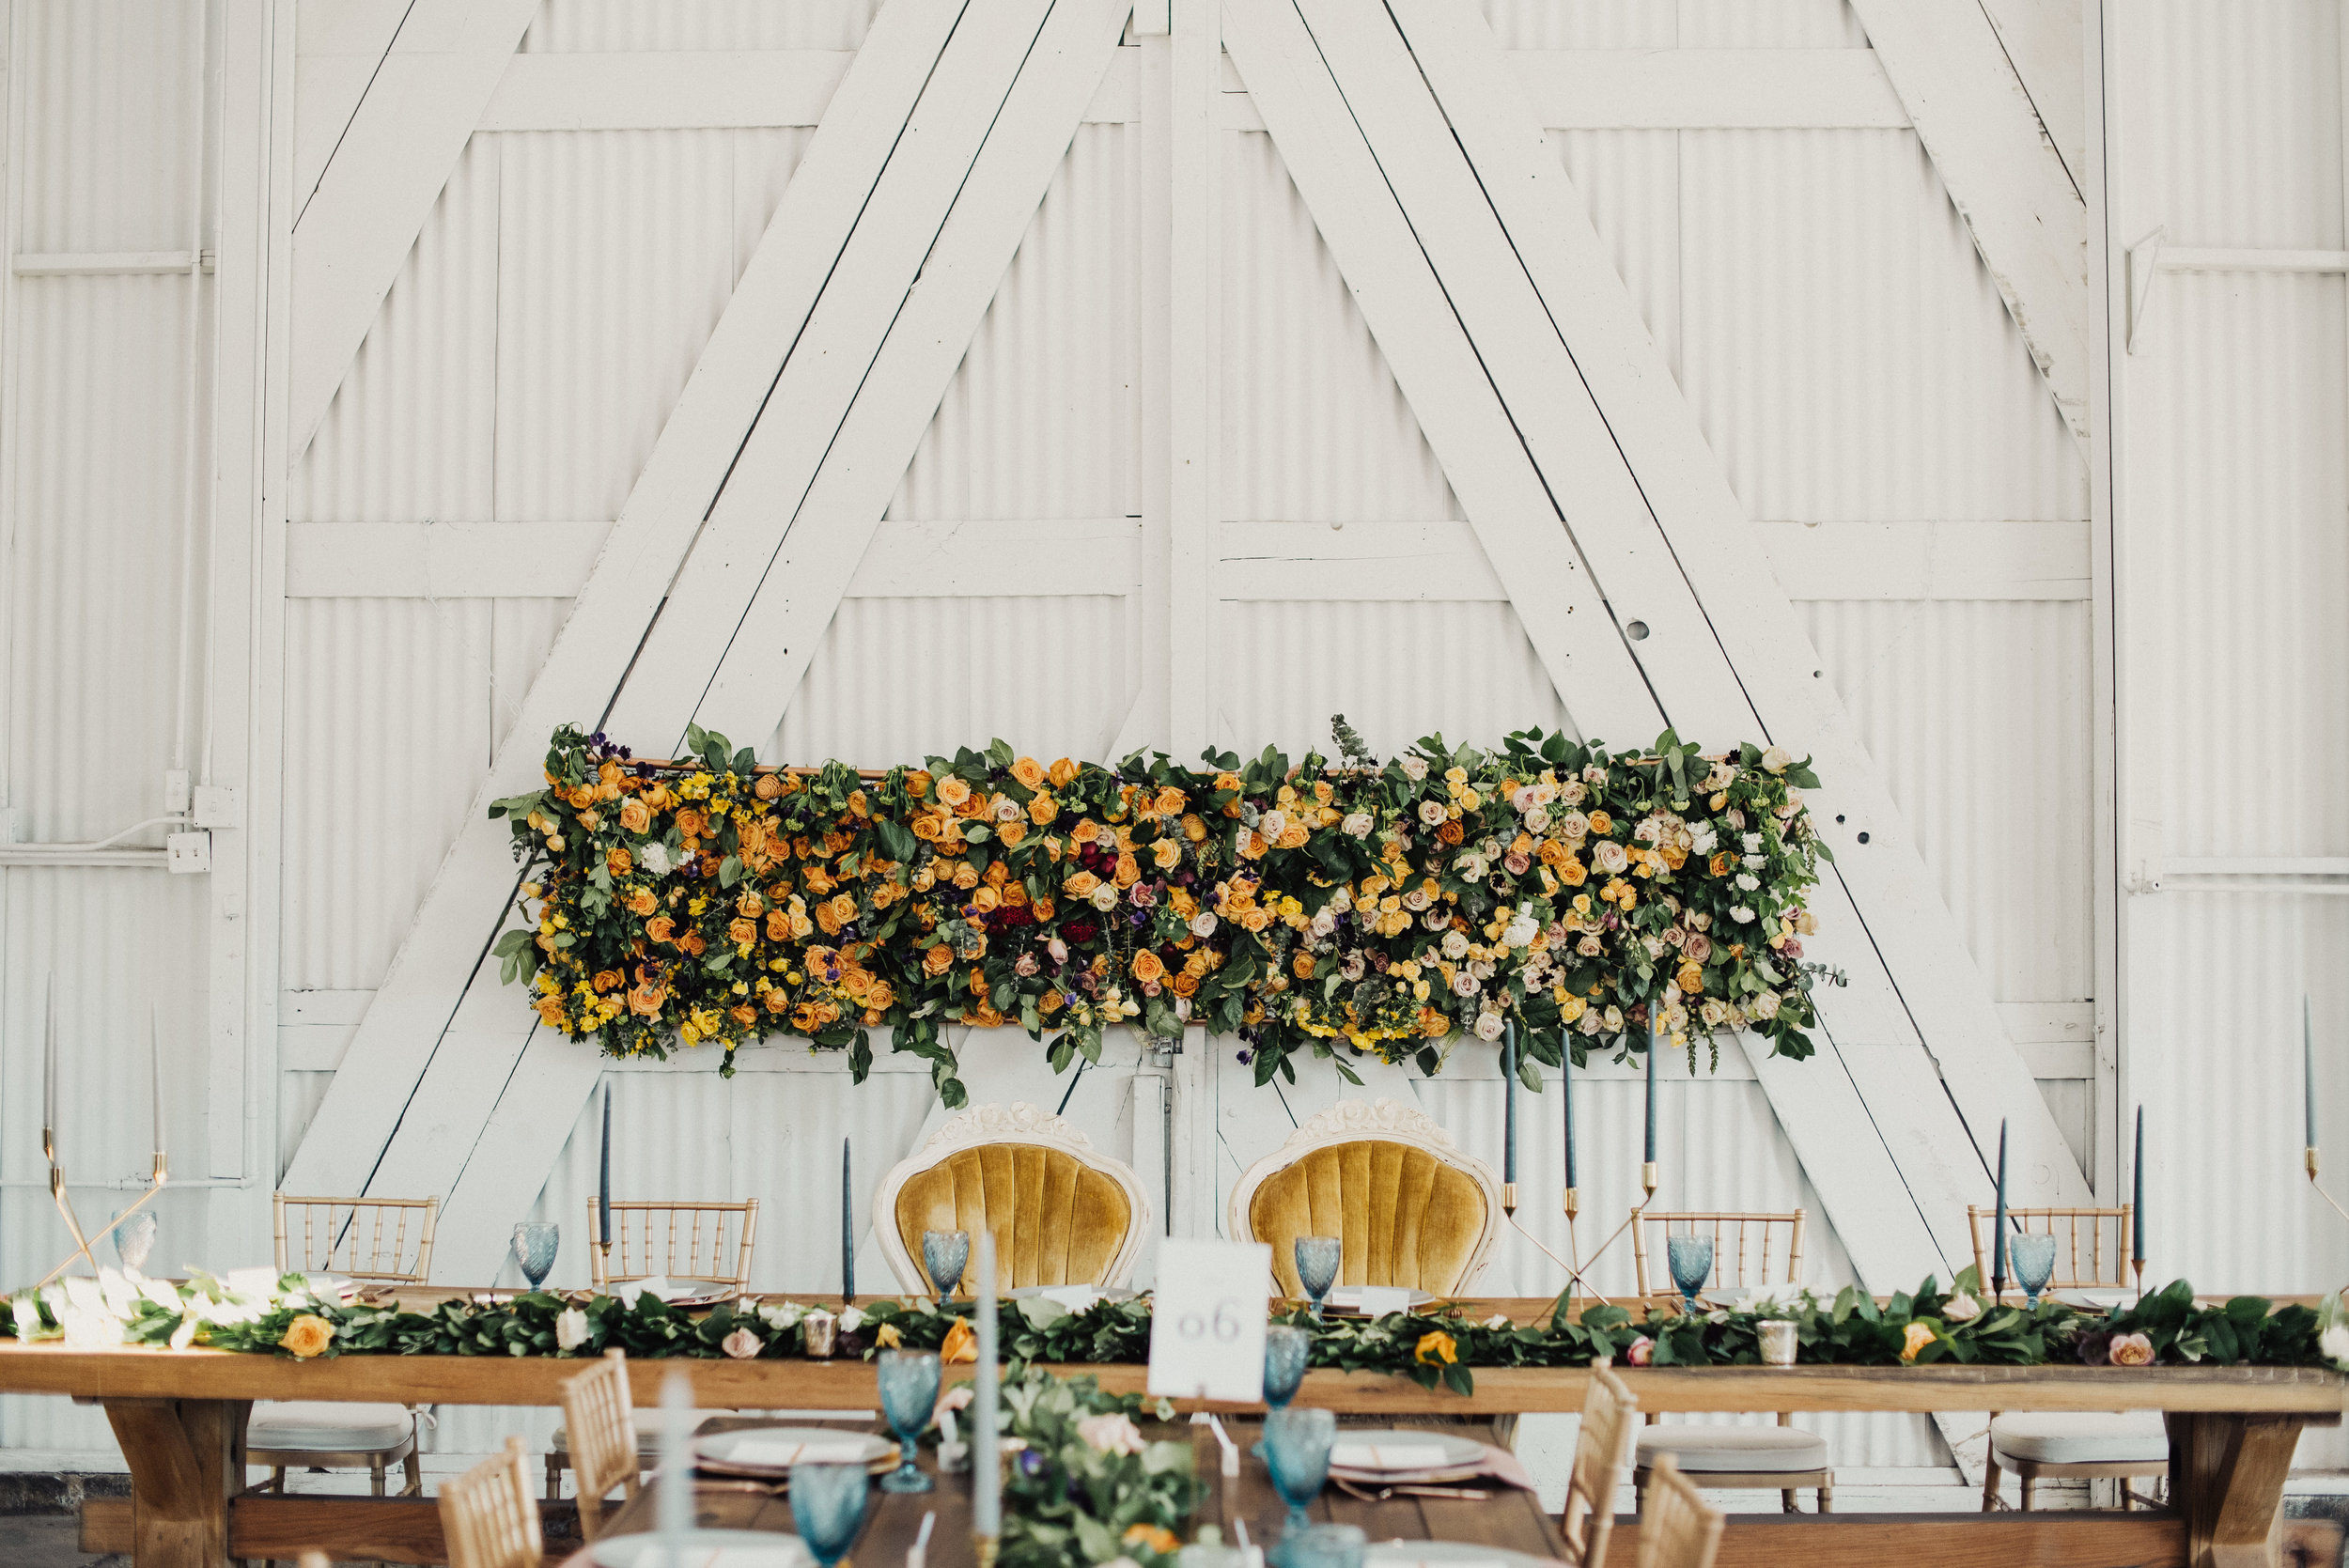 Tropical Wedding Details at the White Shanty